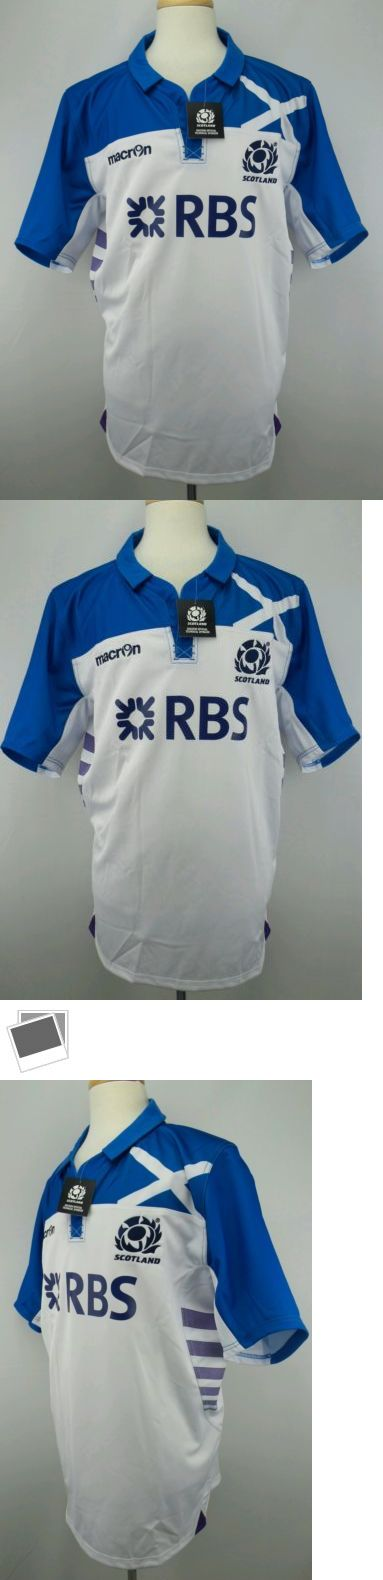 Rugby 21563: Nwt Authentic Macron Scotland Away Rugby Jersey Size Adult Xxl BUY IT NOW ONLY: $56.09